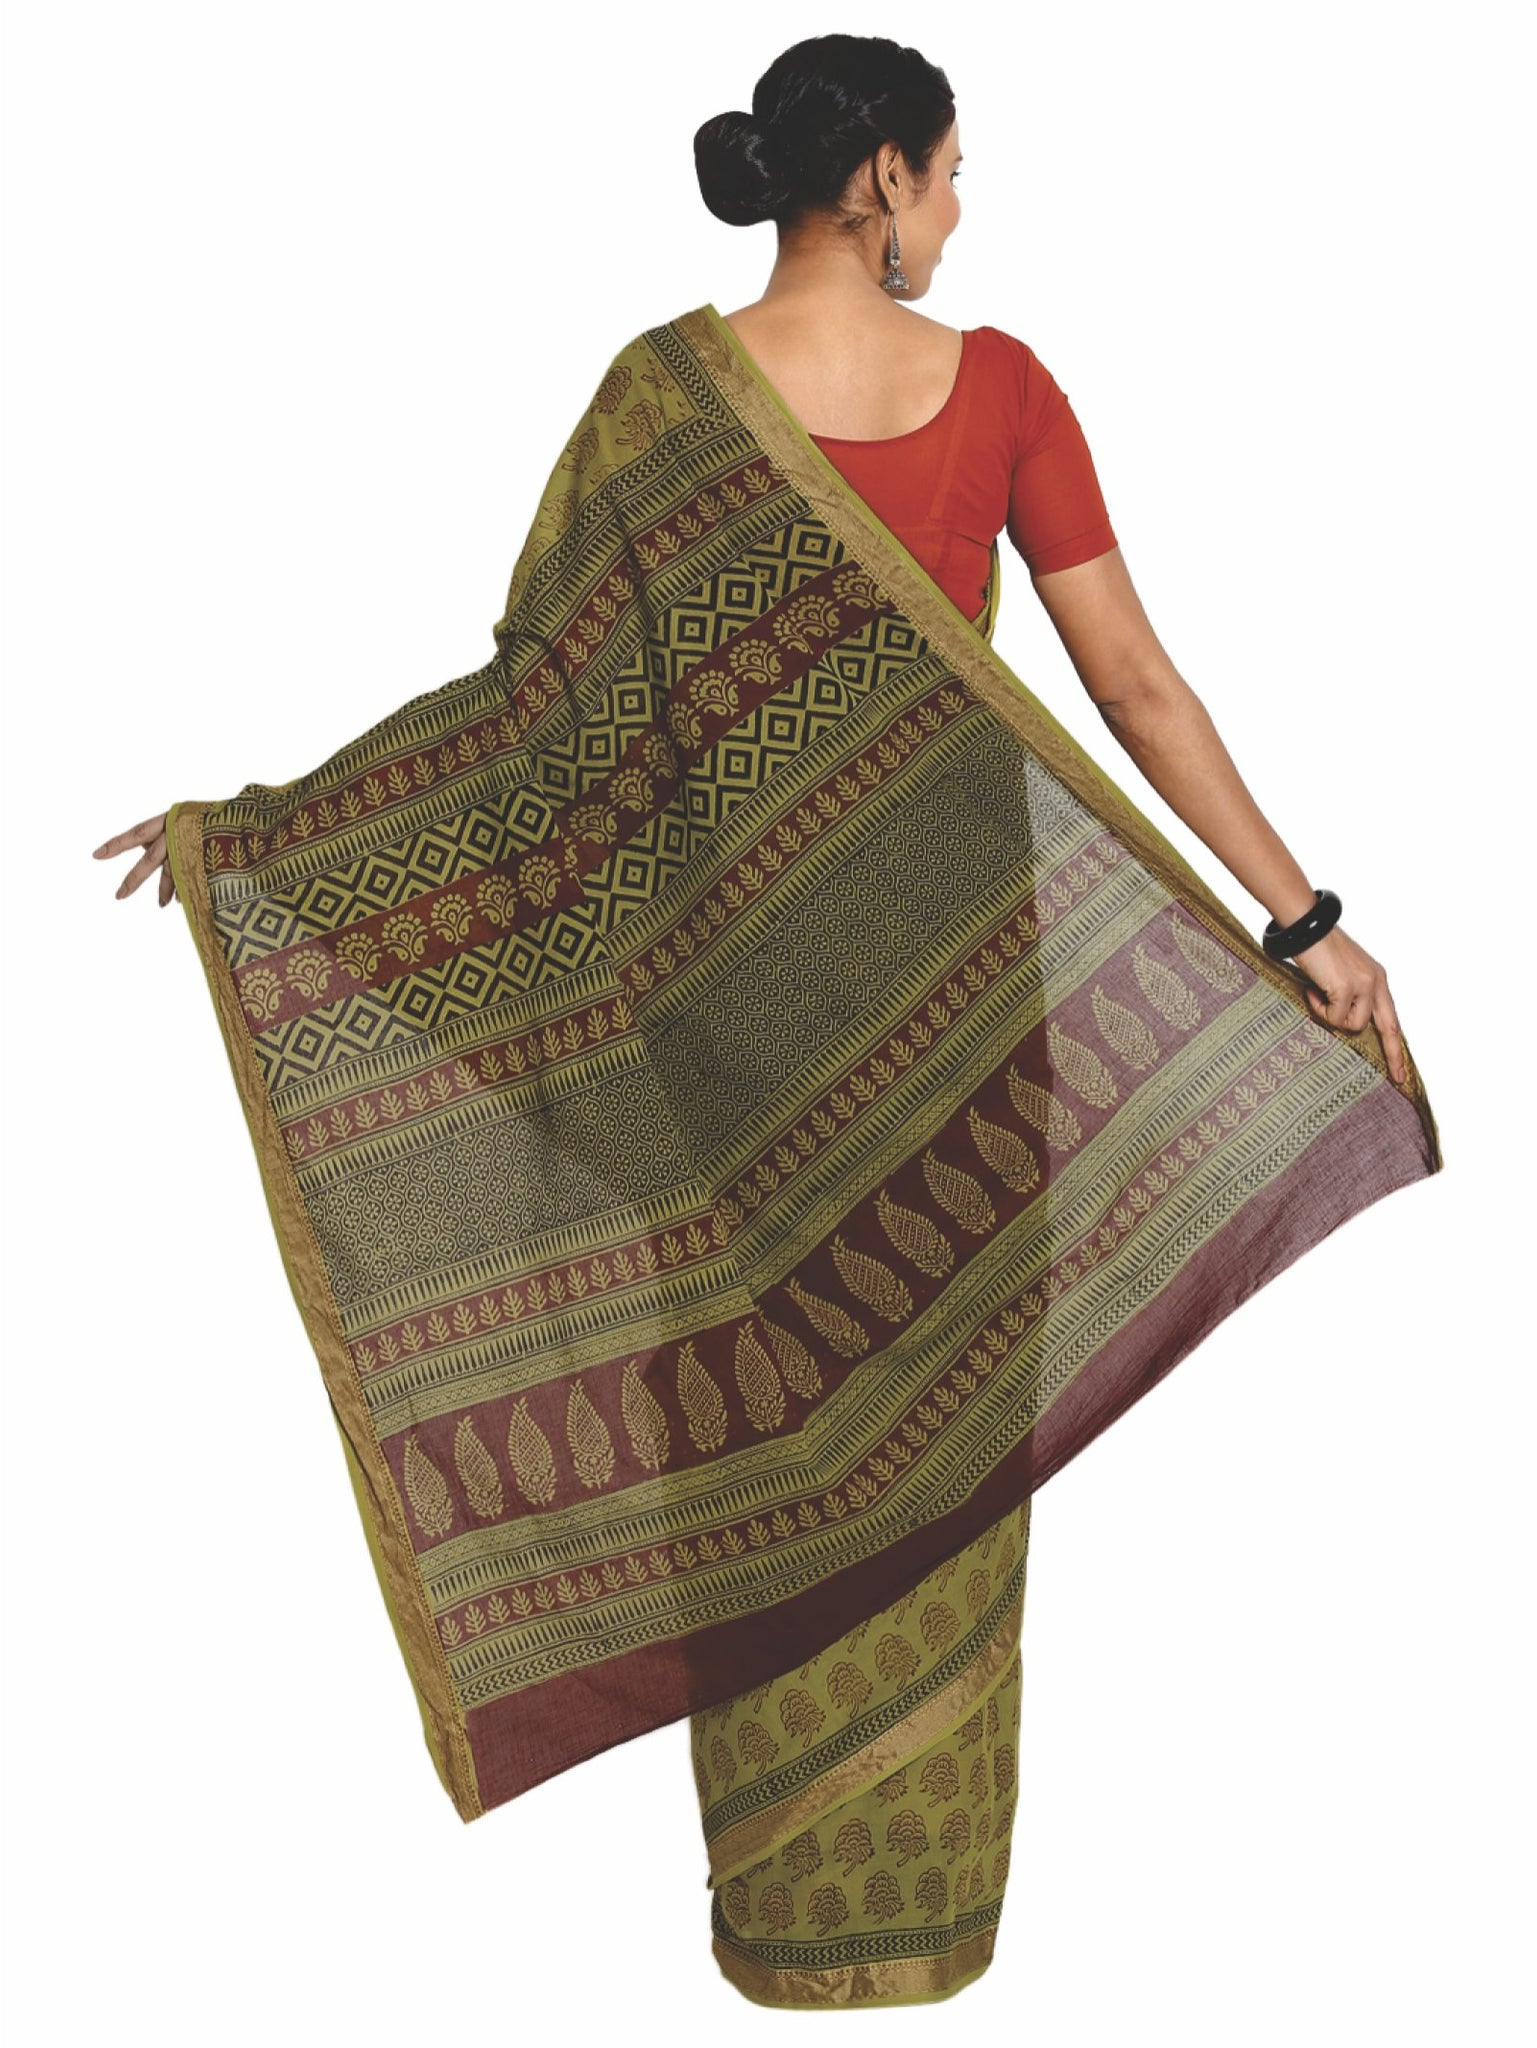 Green Cotton Hand Block Bagh Print Handcrafted Saree-Saree-Kalakari India-ZIBASA0072-Bagh, Cotton, Geographical Indication, Hand Blocks, Hand Crafted, Heritage Prints, Natural Dyes, Sarees, Sustainable Fabrics-[Linen,Ethnic,wear,Fashionista,Handloom,Handicraft,Indigo,blockprint,block,print,Cotton,Chanderi,Blue, latest,classy,party,bollywood,trendy,summer,style,traditional,formal,elegant,unique,style,hand,block,print, dabu,booti,gift,present,glamorous,affordable,collectible,Sari,Saree,printed, ho